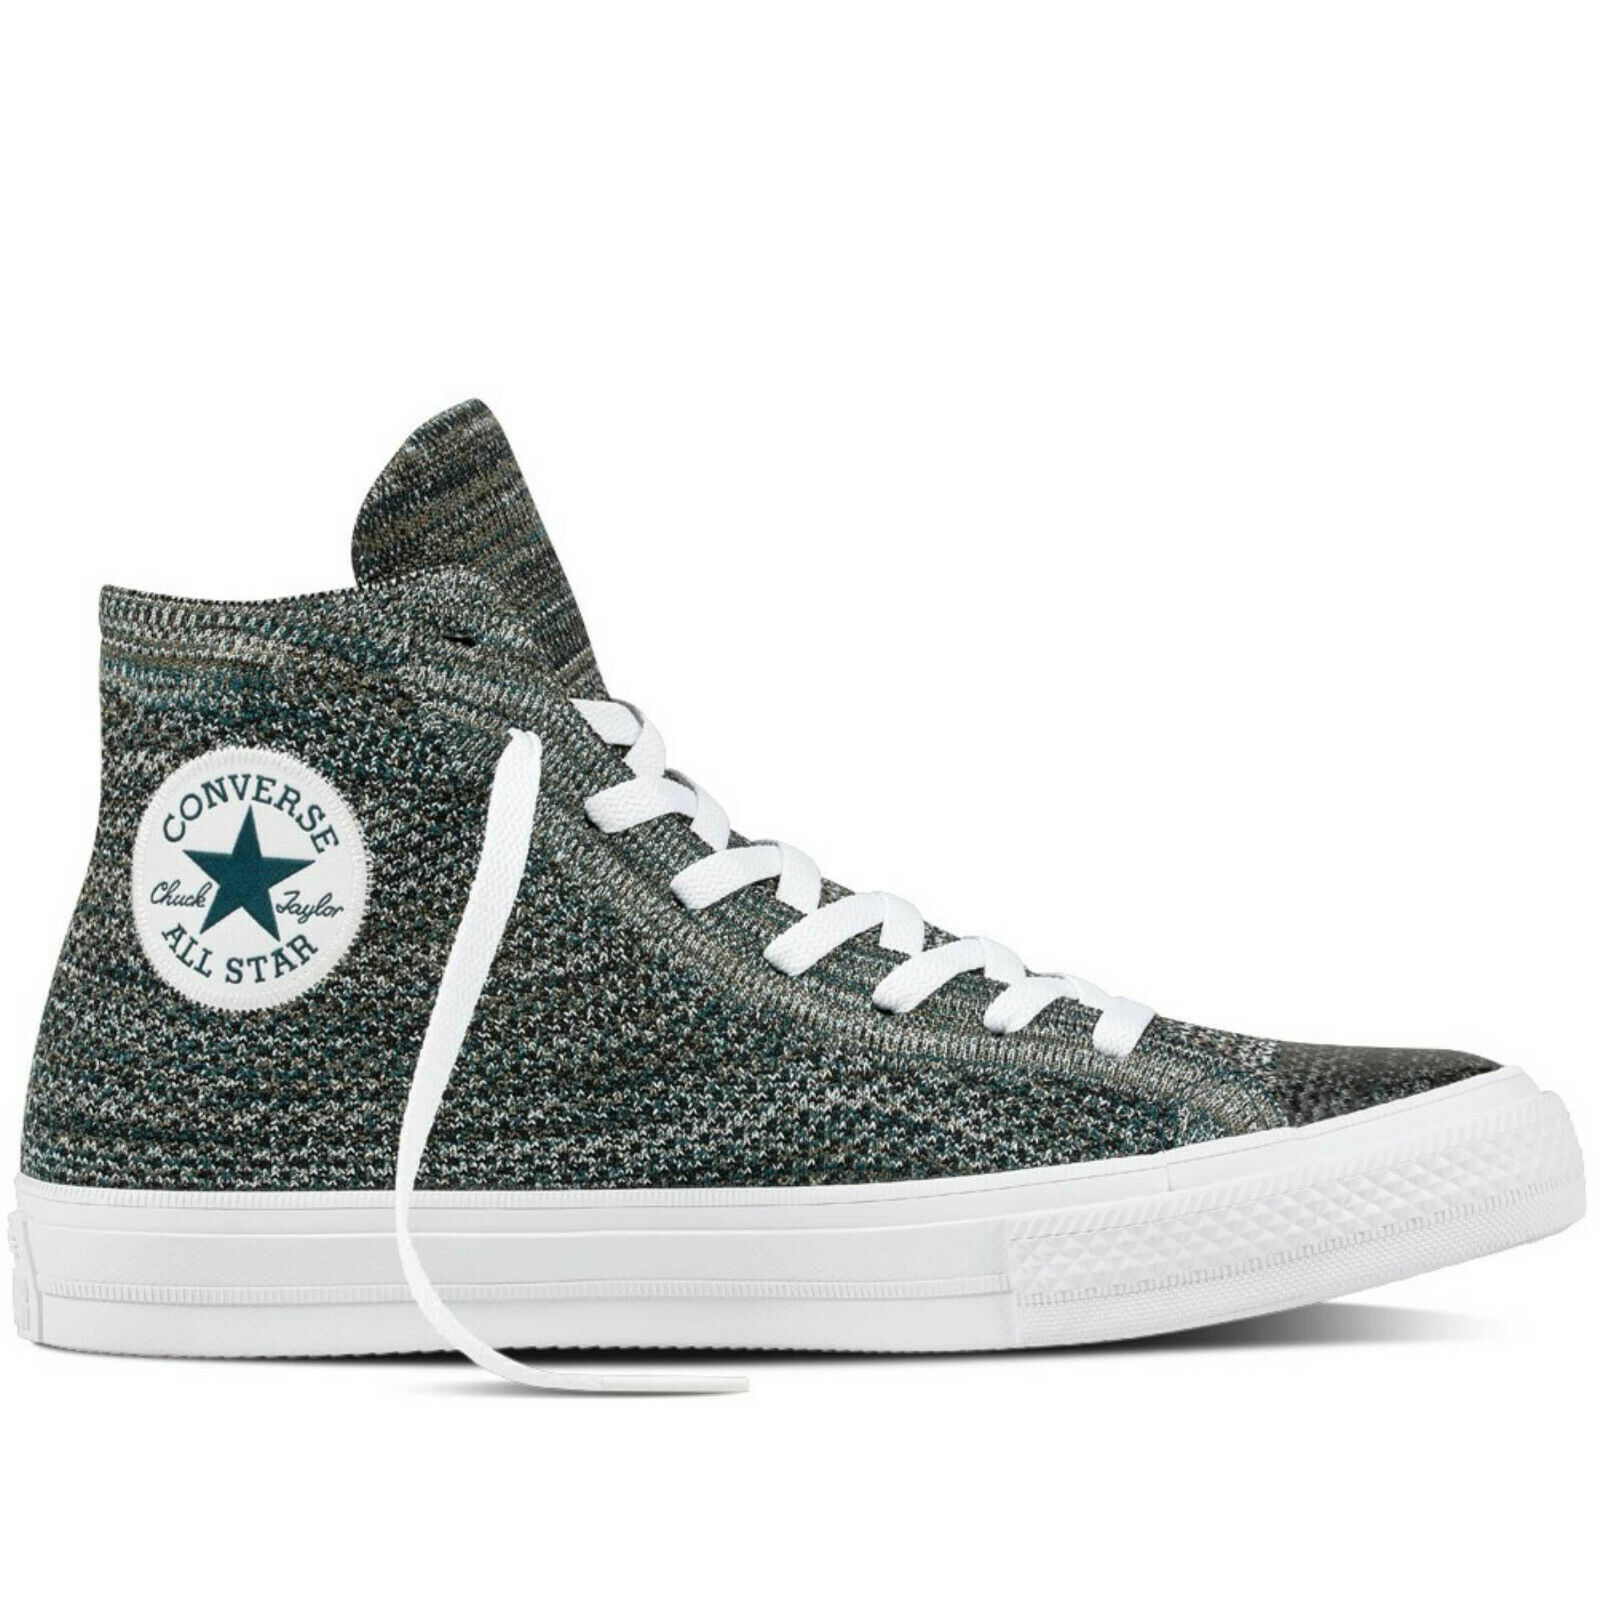 Converse Mens Chuck Taylor All Star Hi Flyknit 157509C Teal/White Size 10 image 2